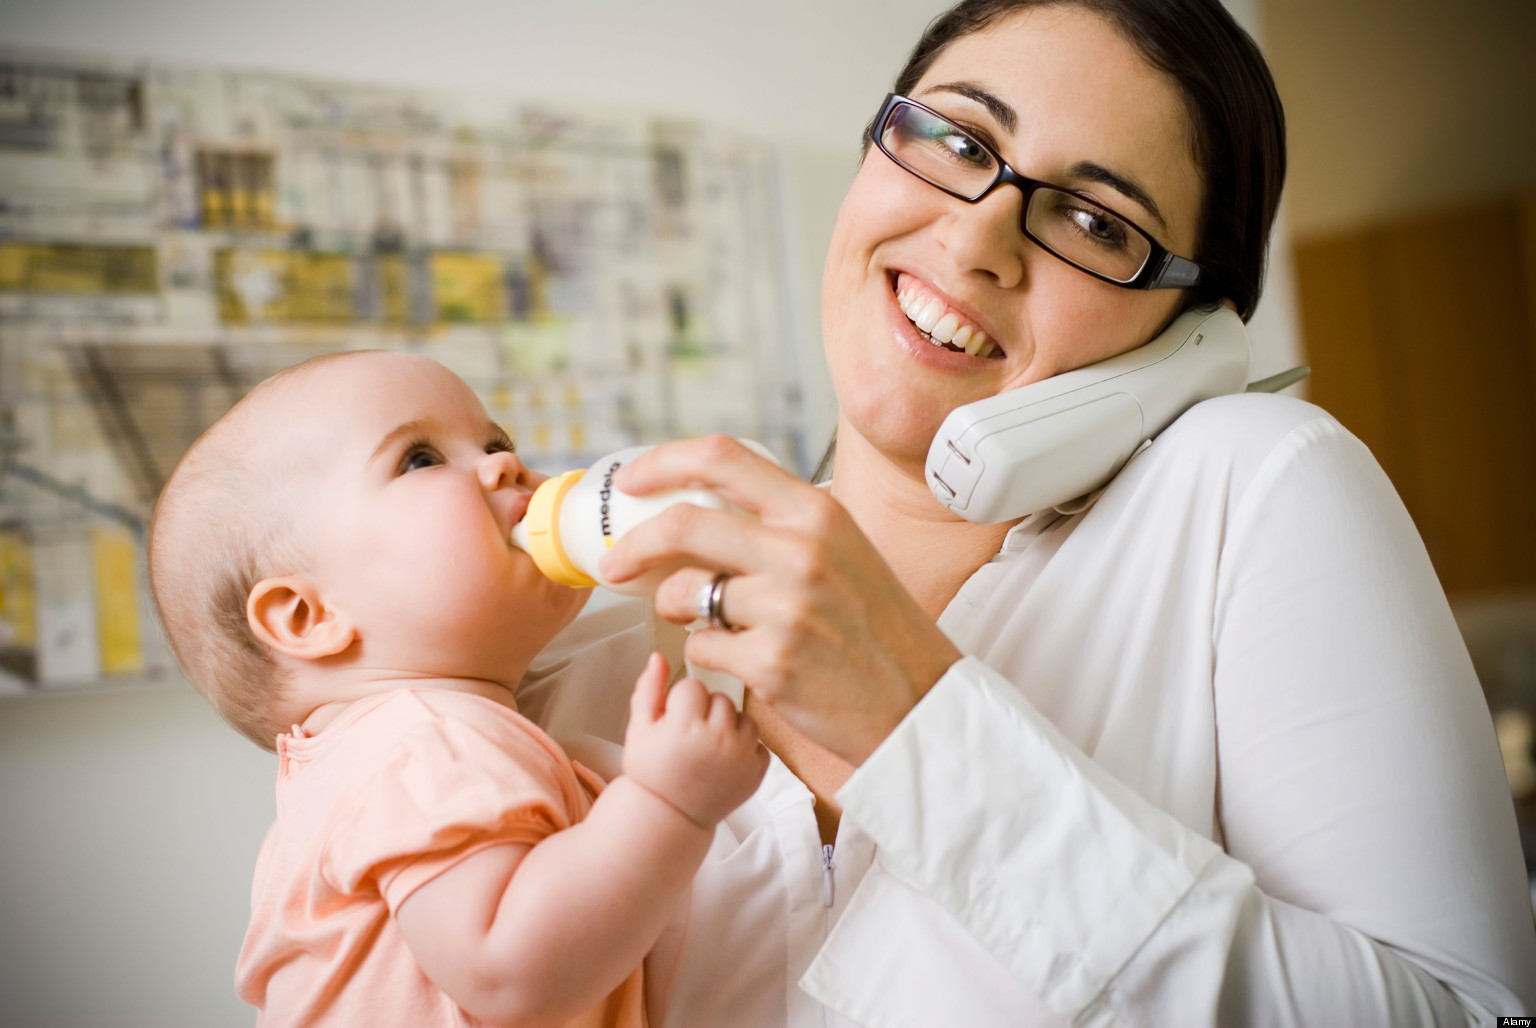 Mother feeding baby while on phone